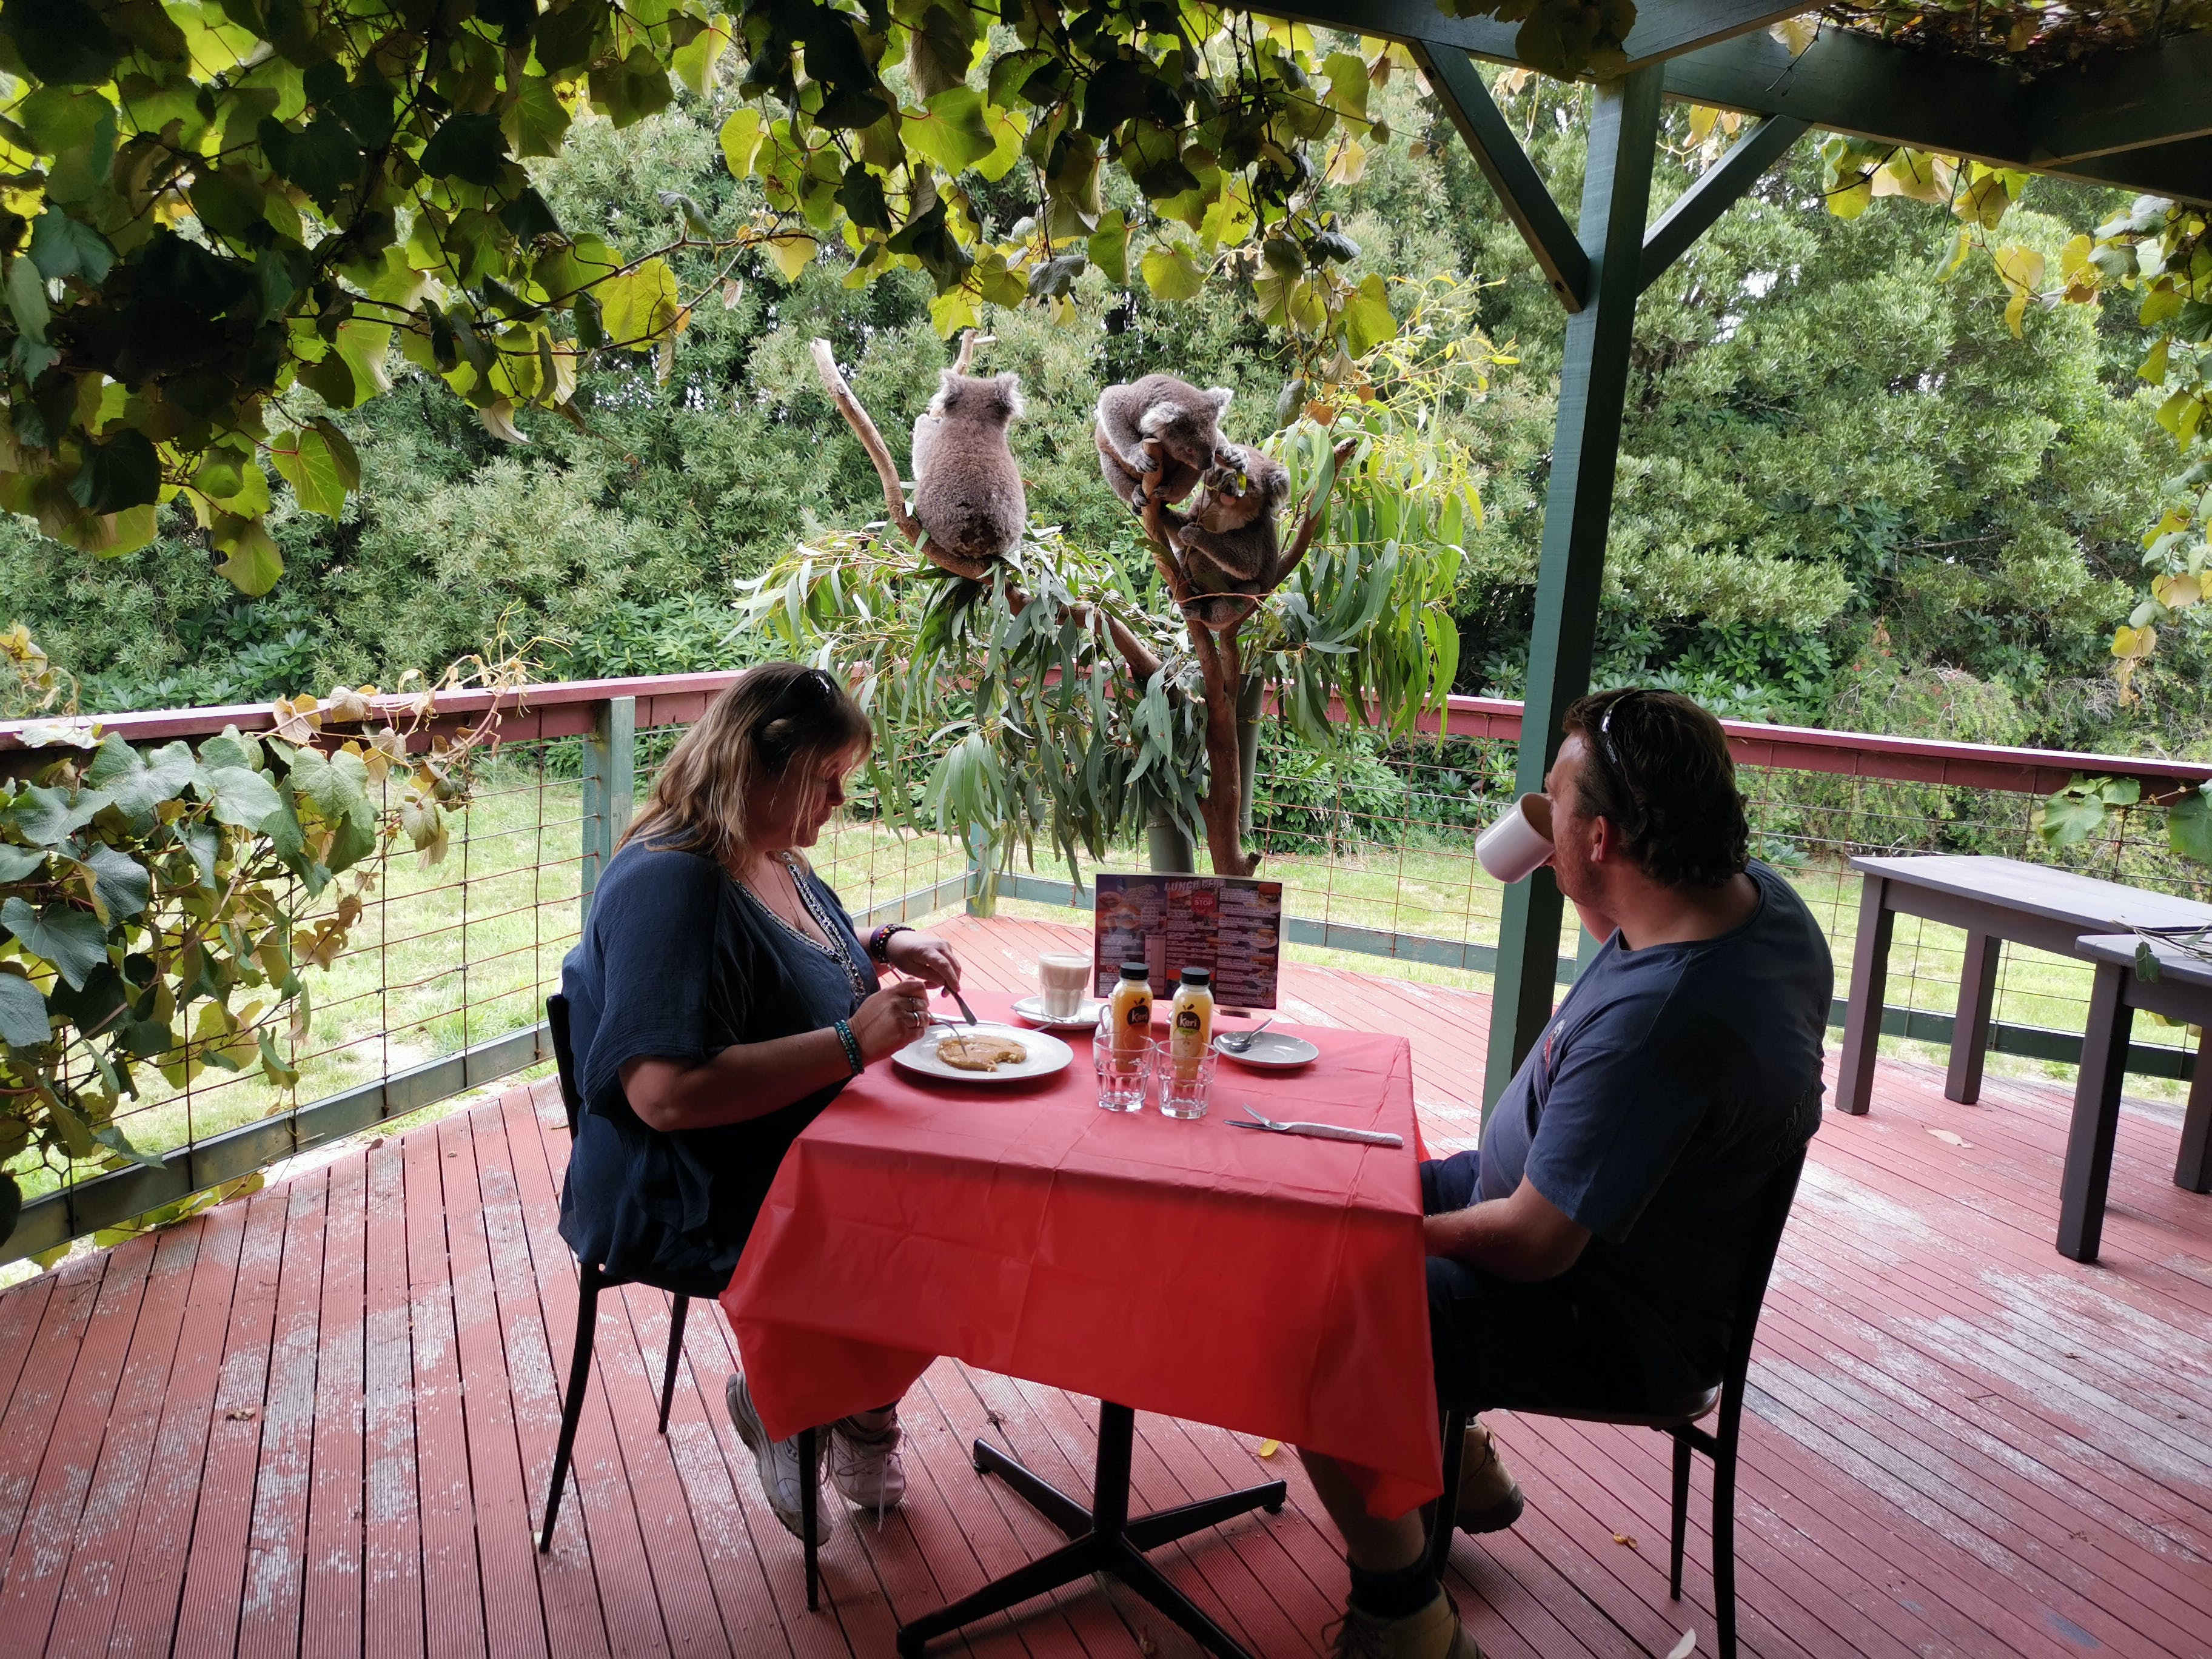 The Aussie Stop offering Breakfast with Koalas - Accommodation QLD